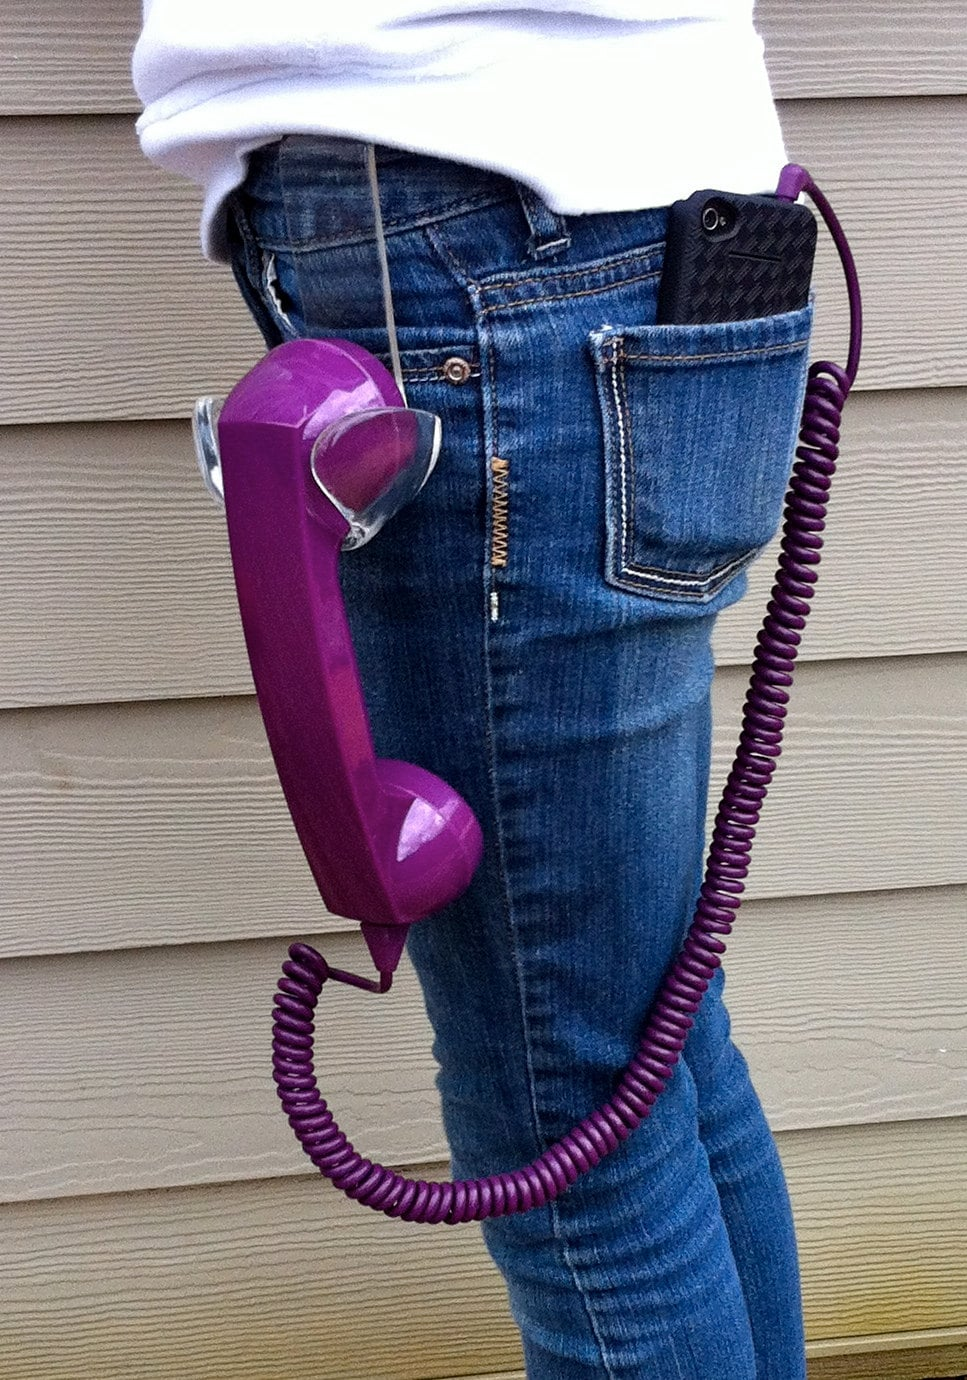 retro-smartphone-headset-accessory